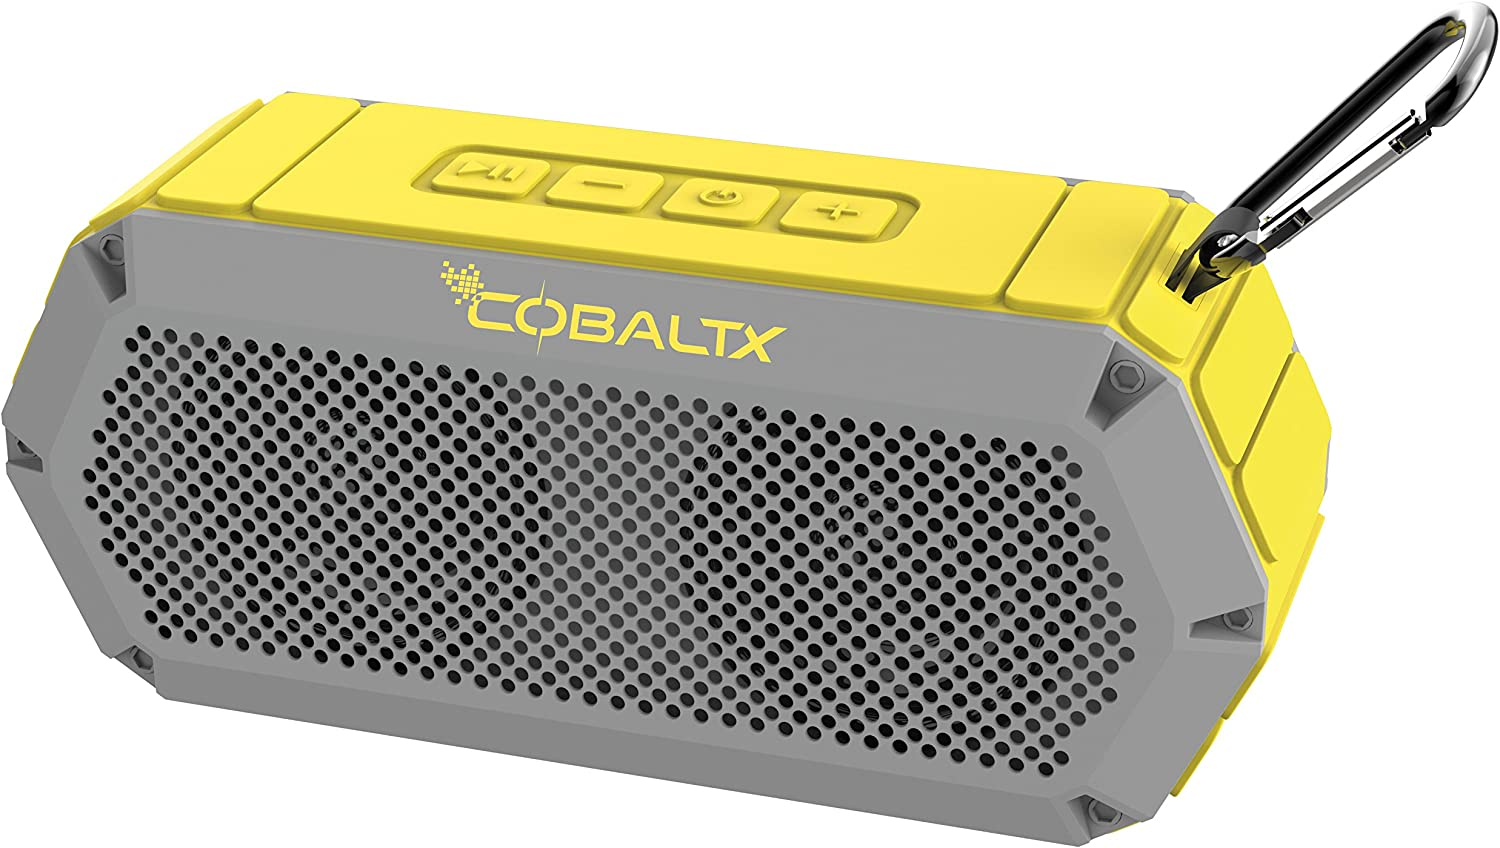 COBALTX Indefinitely Tank Rugged Waterproof Bluetooth Rated Speaker Our shop OFFers the best service blue iPX7